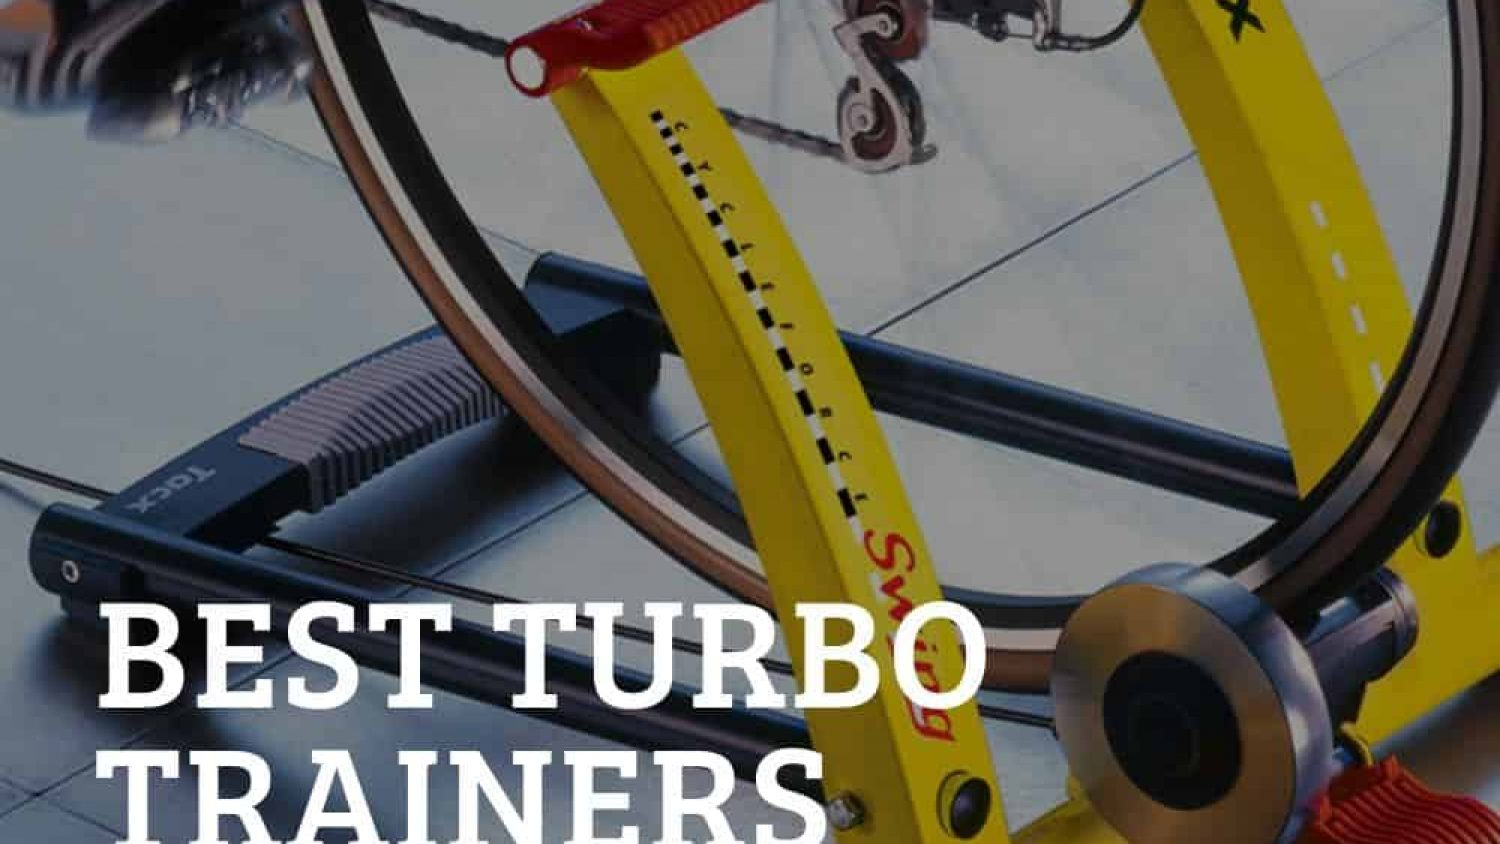 5 of the Best Turbo Trainers on the Market